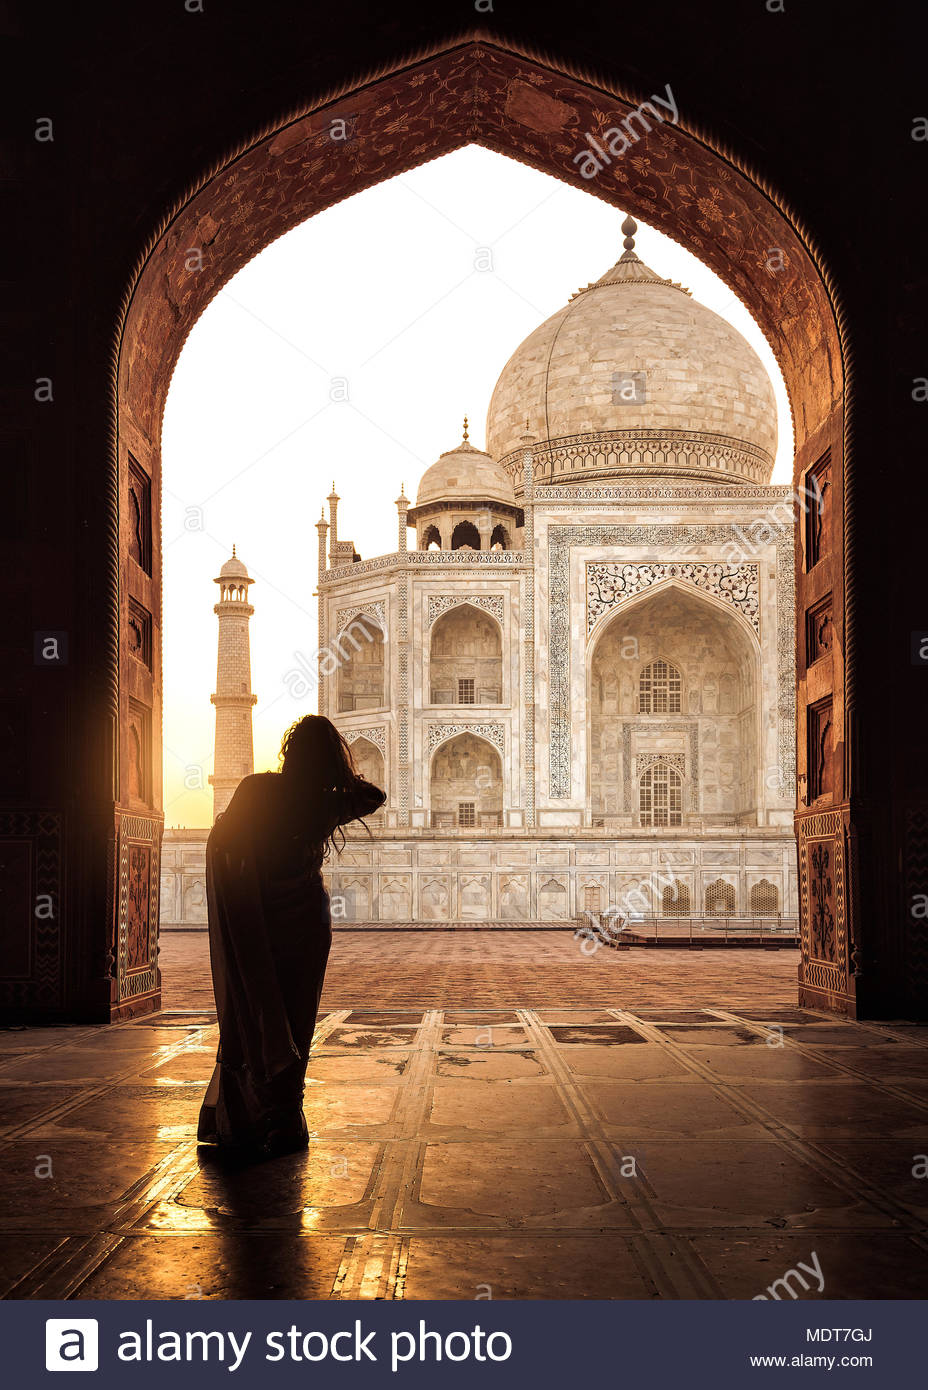 Woman, Kau Ban, Taj Mahal, India - Stock Image